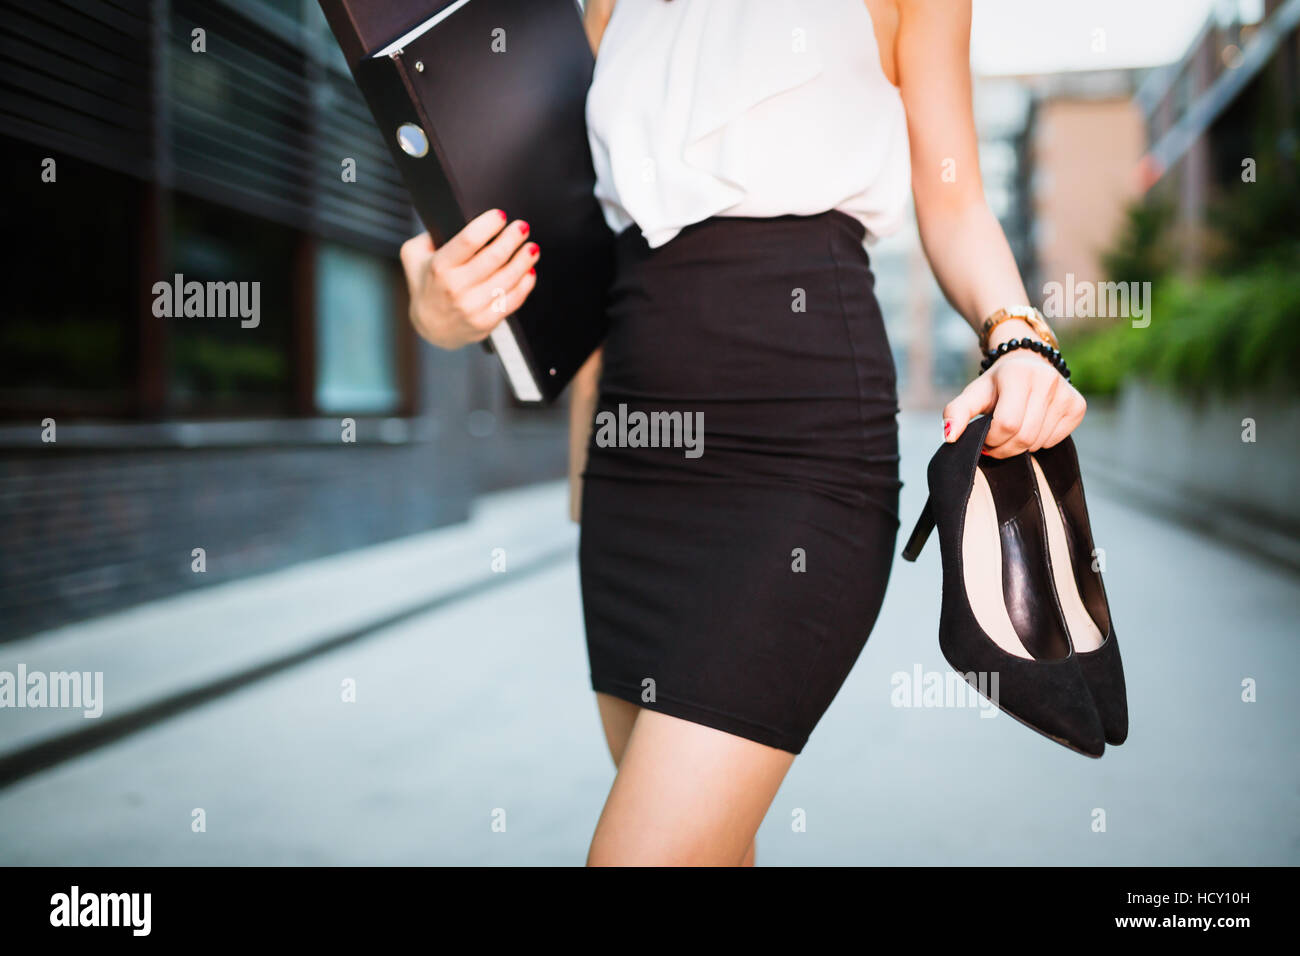 Woman finished working, no overtime  concept - Stock Image